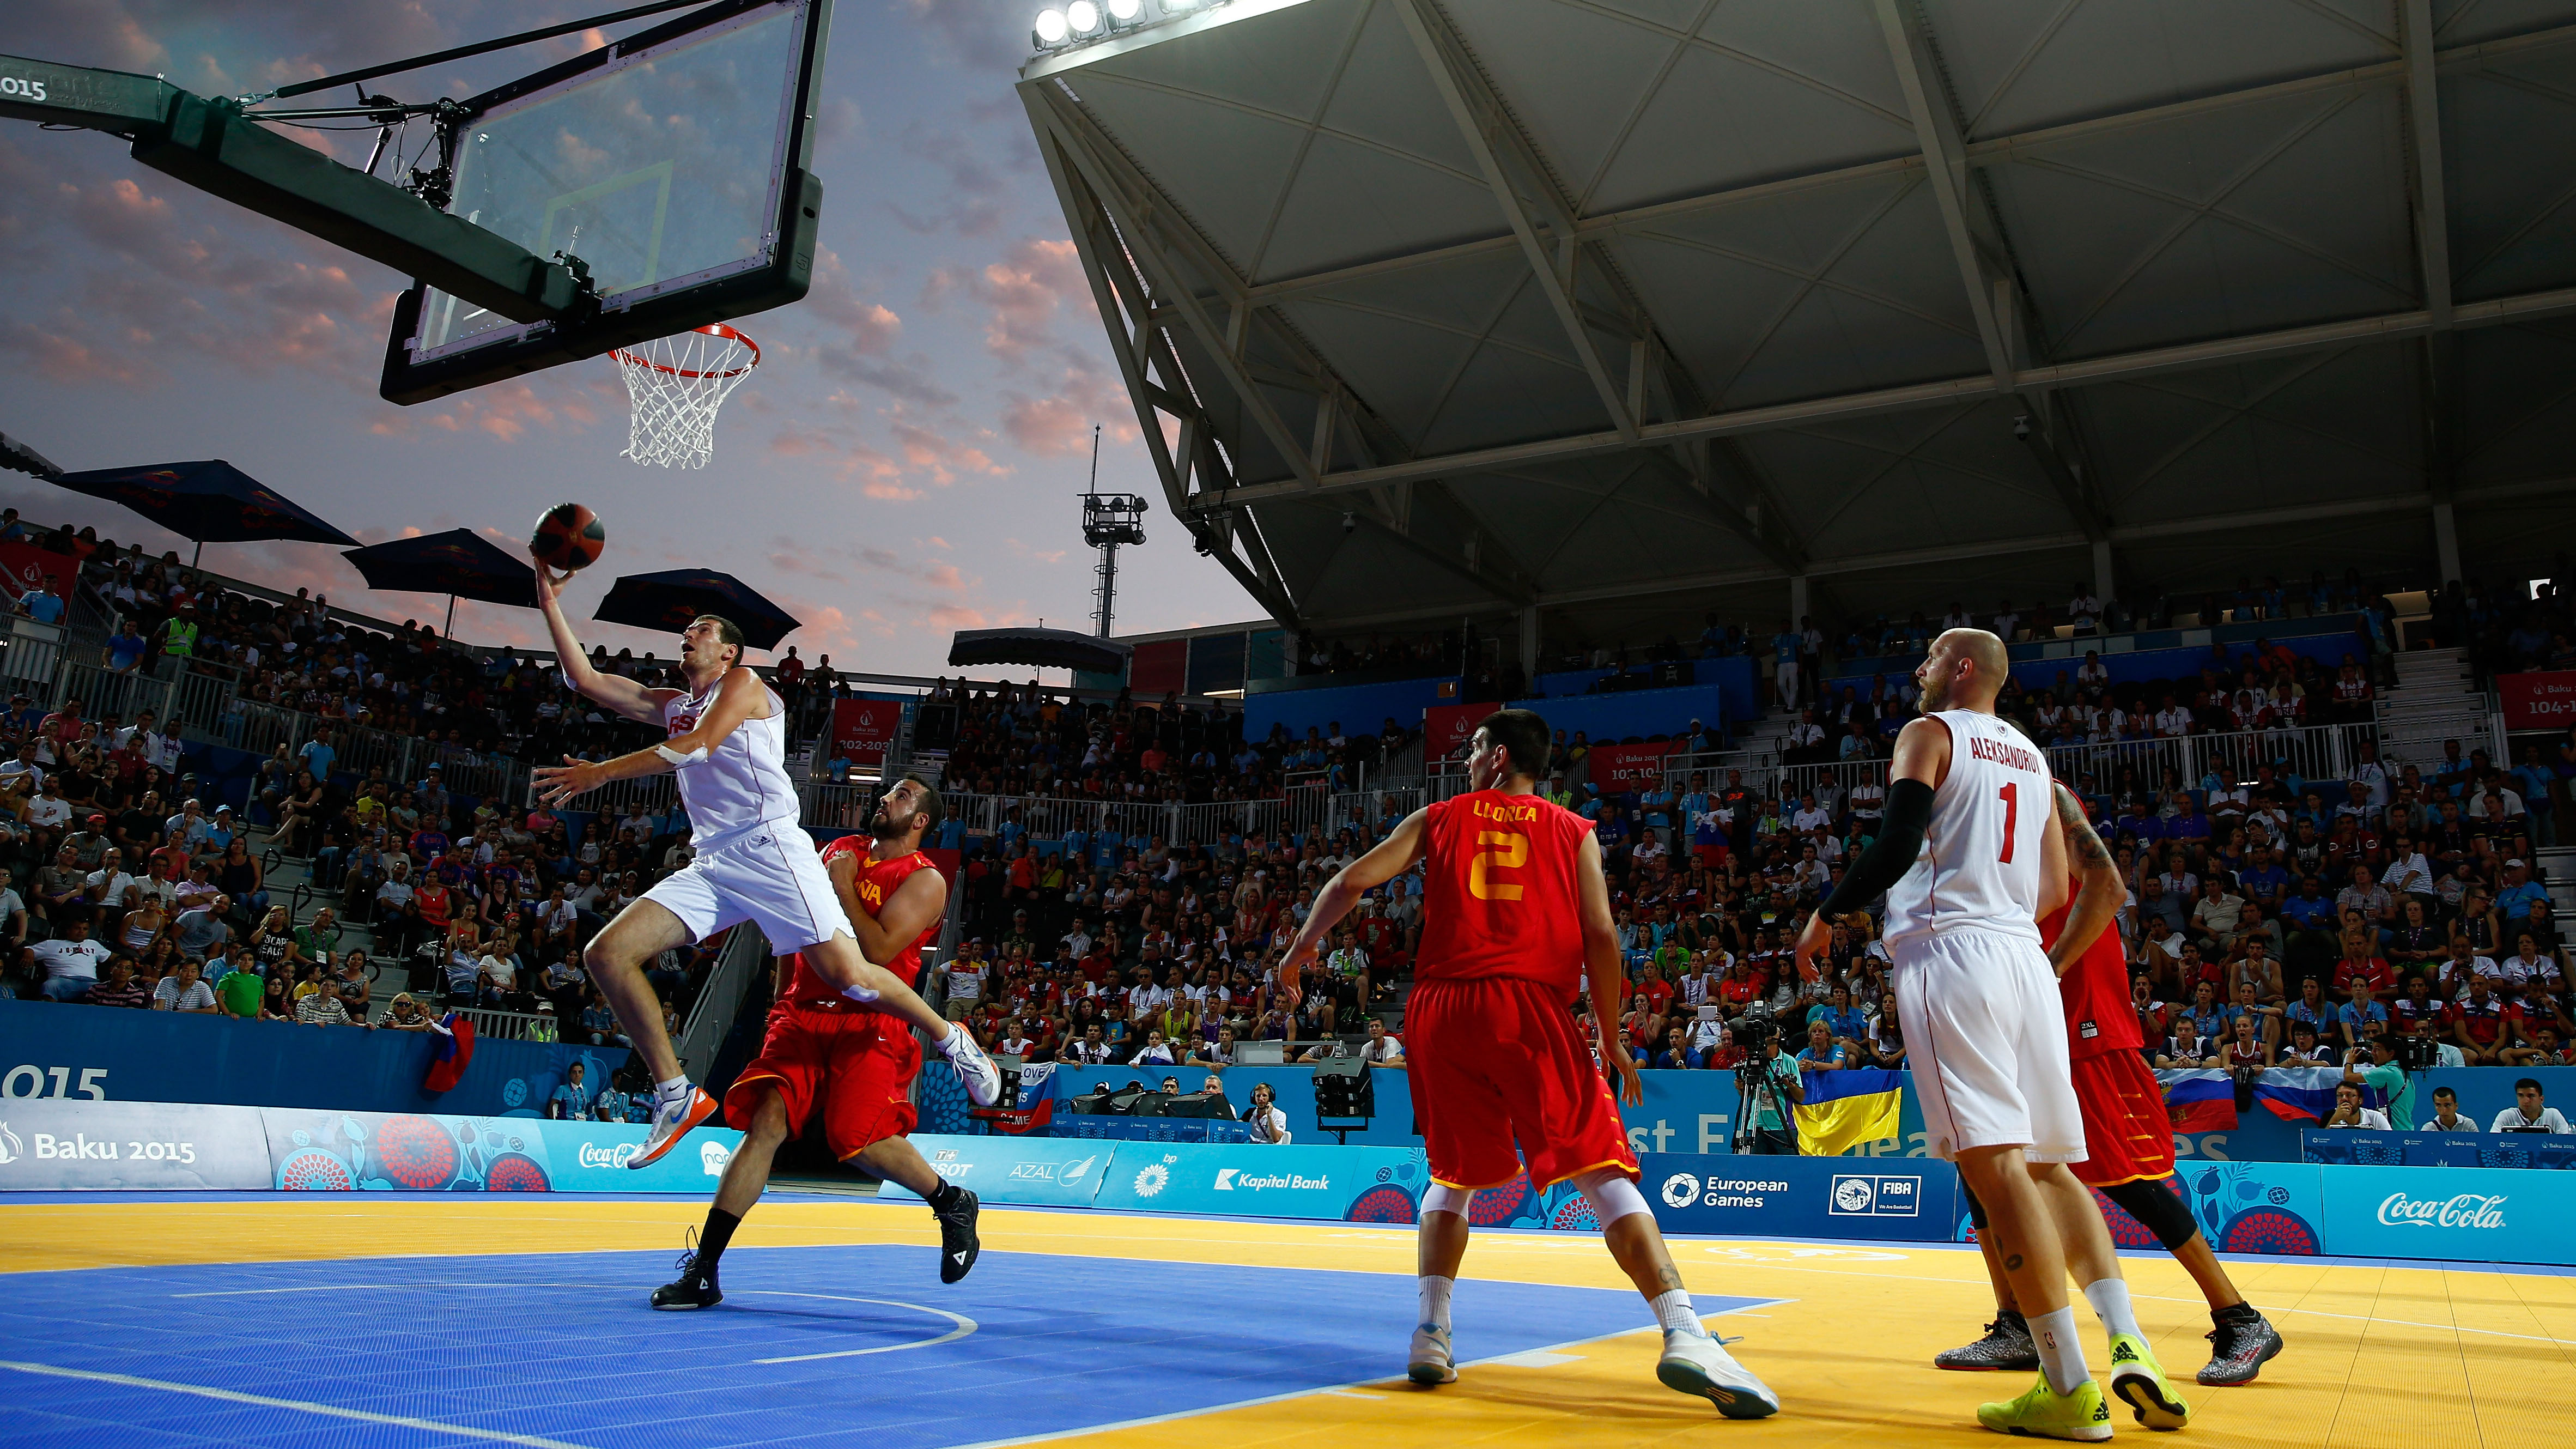 Olympic 3-on-3 basketball scoring: Mistake to play games with 1s and 2s